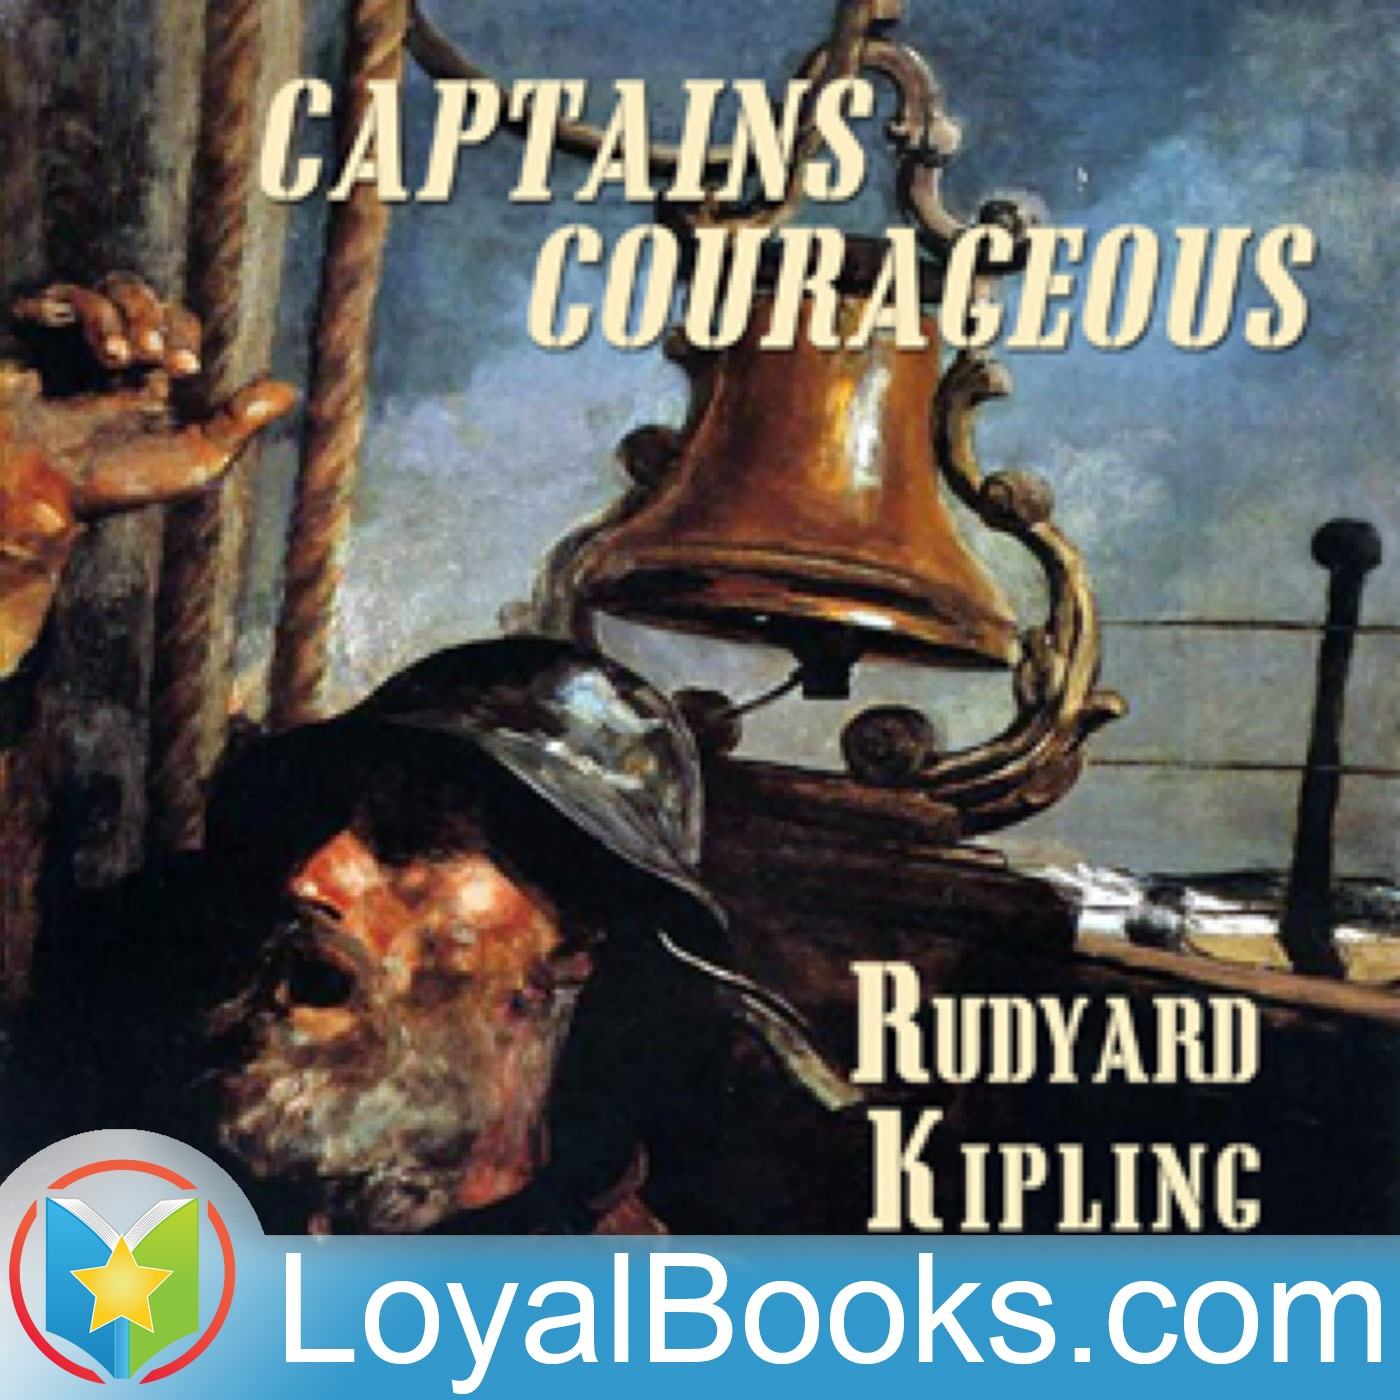 <![CDATA[Captains Courageous by Rudyard Kipling]]>